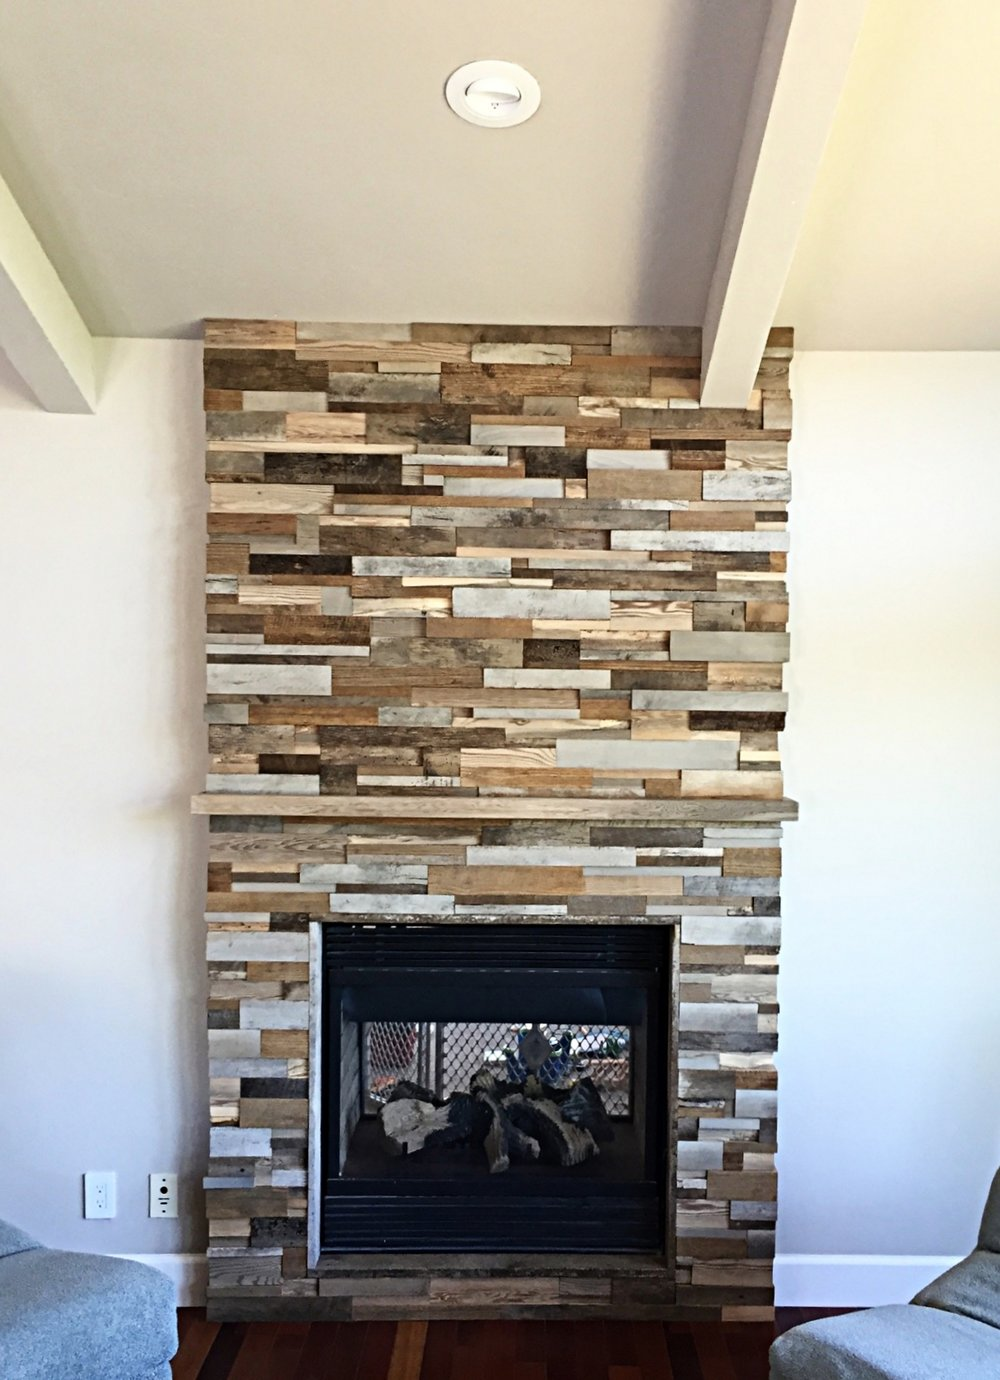 Wood tile fireplace mantle.